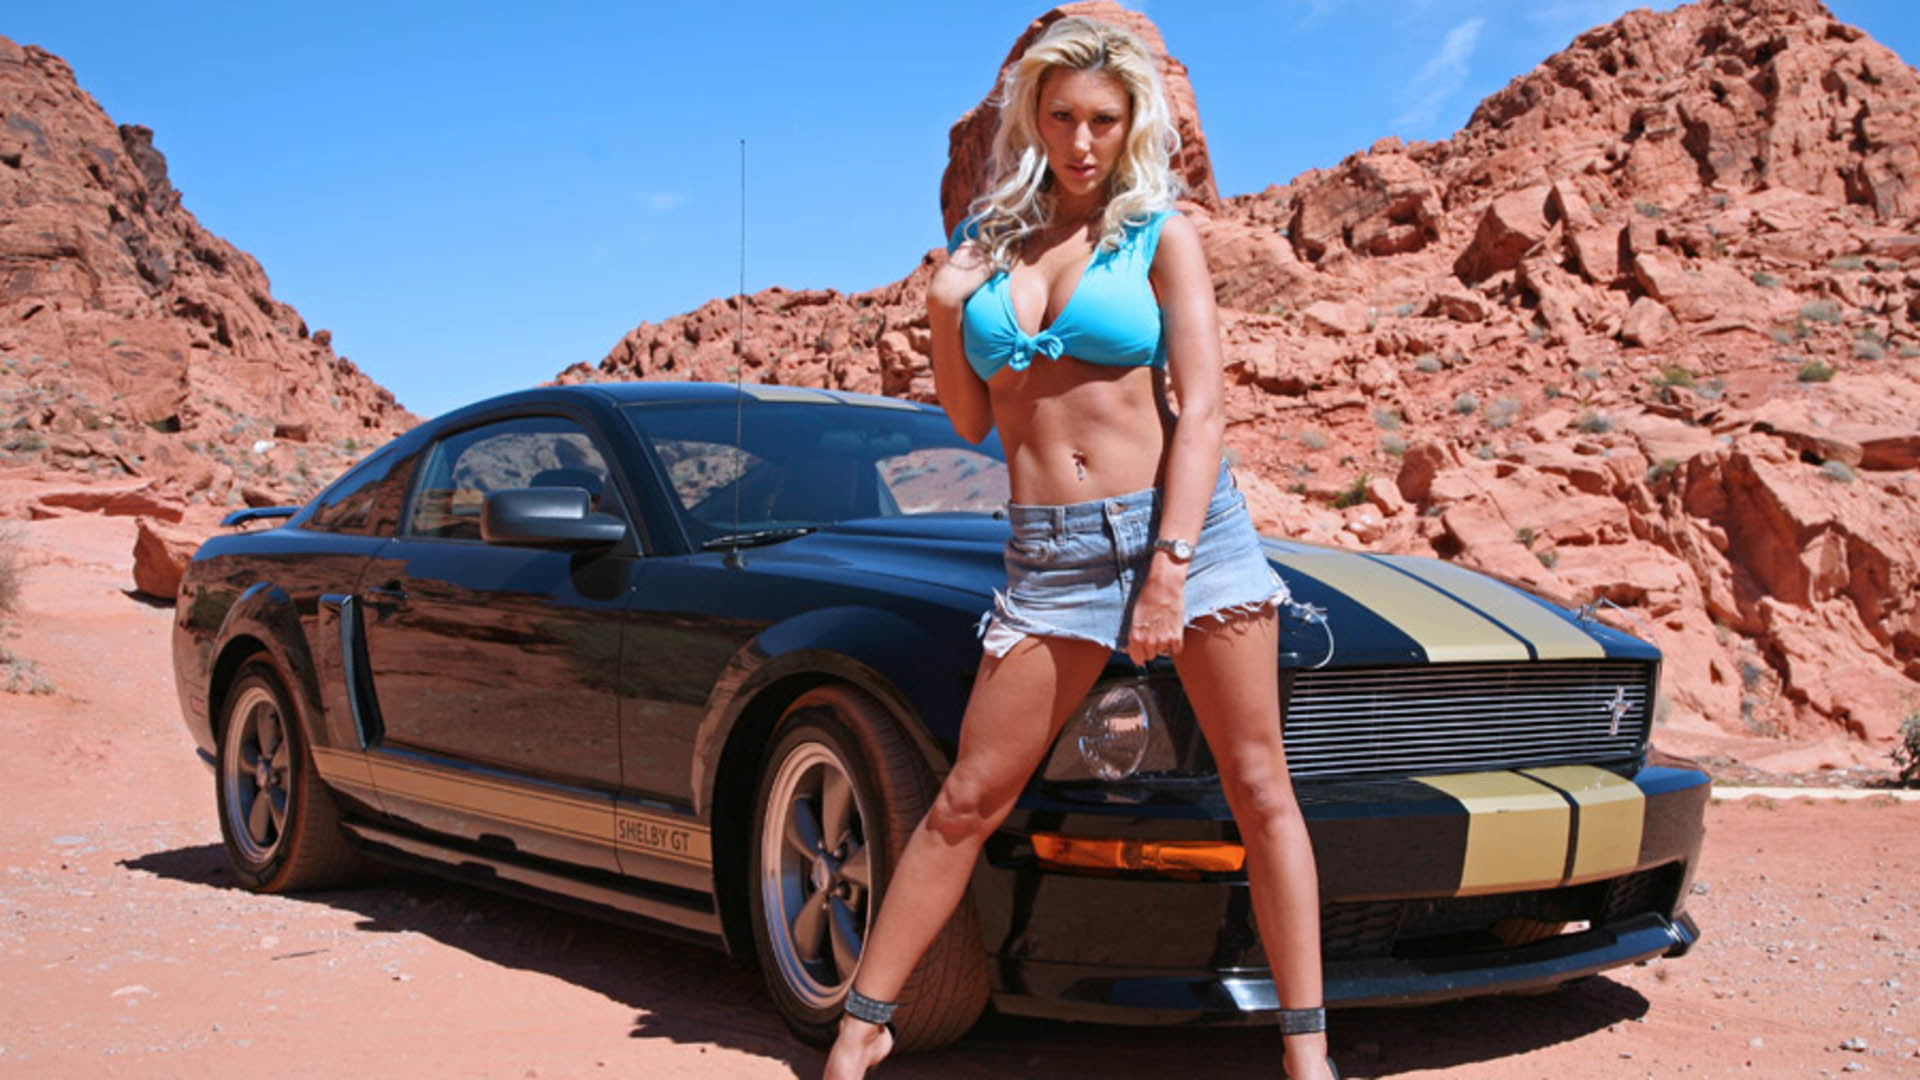 1920x1080 HOT girls and mustangs | Hot girl with hot ford mustang wallpaper